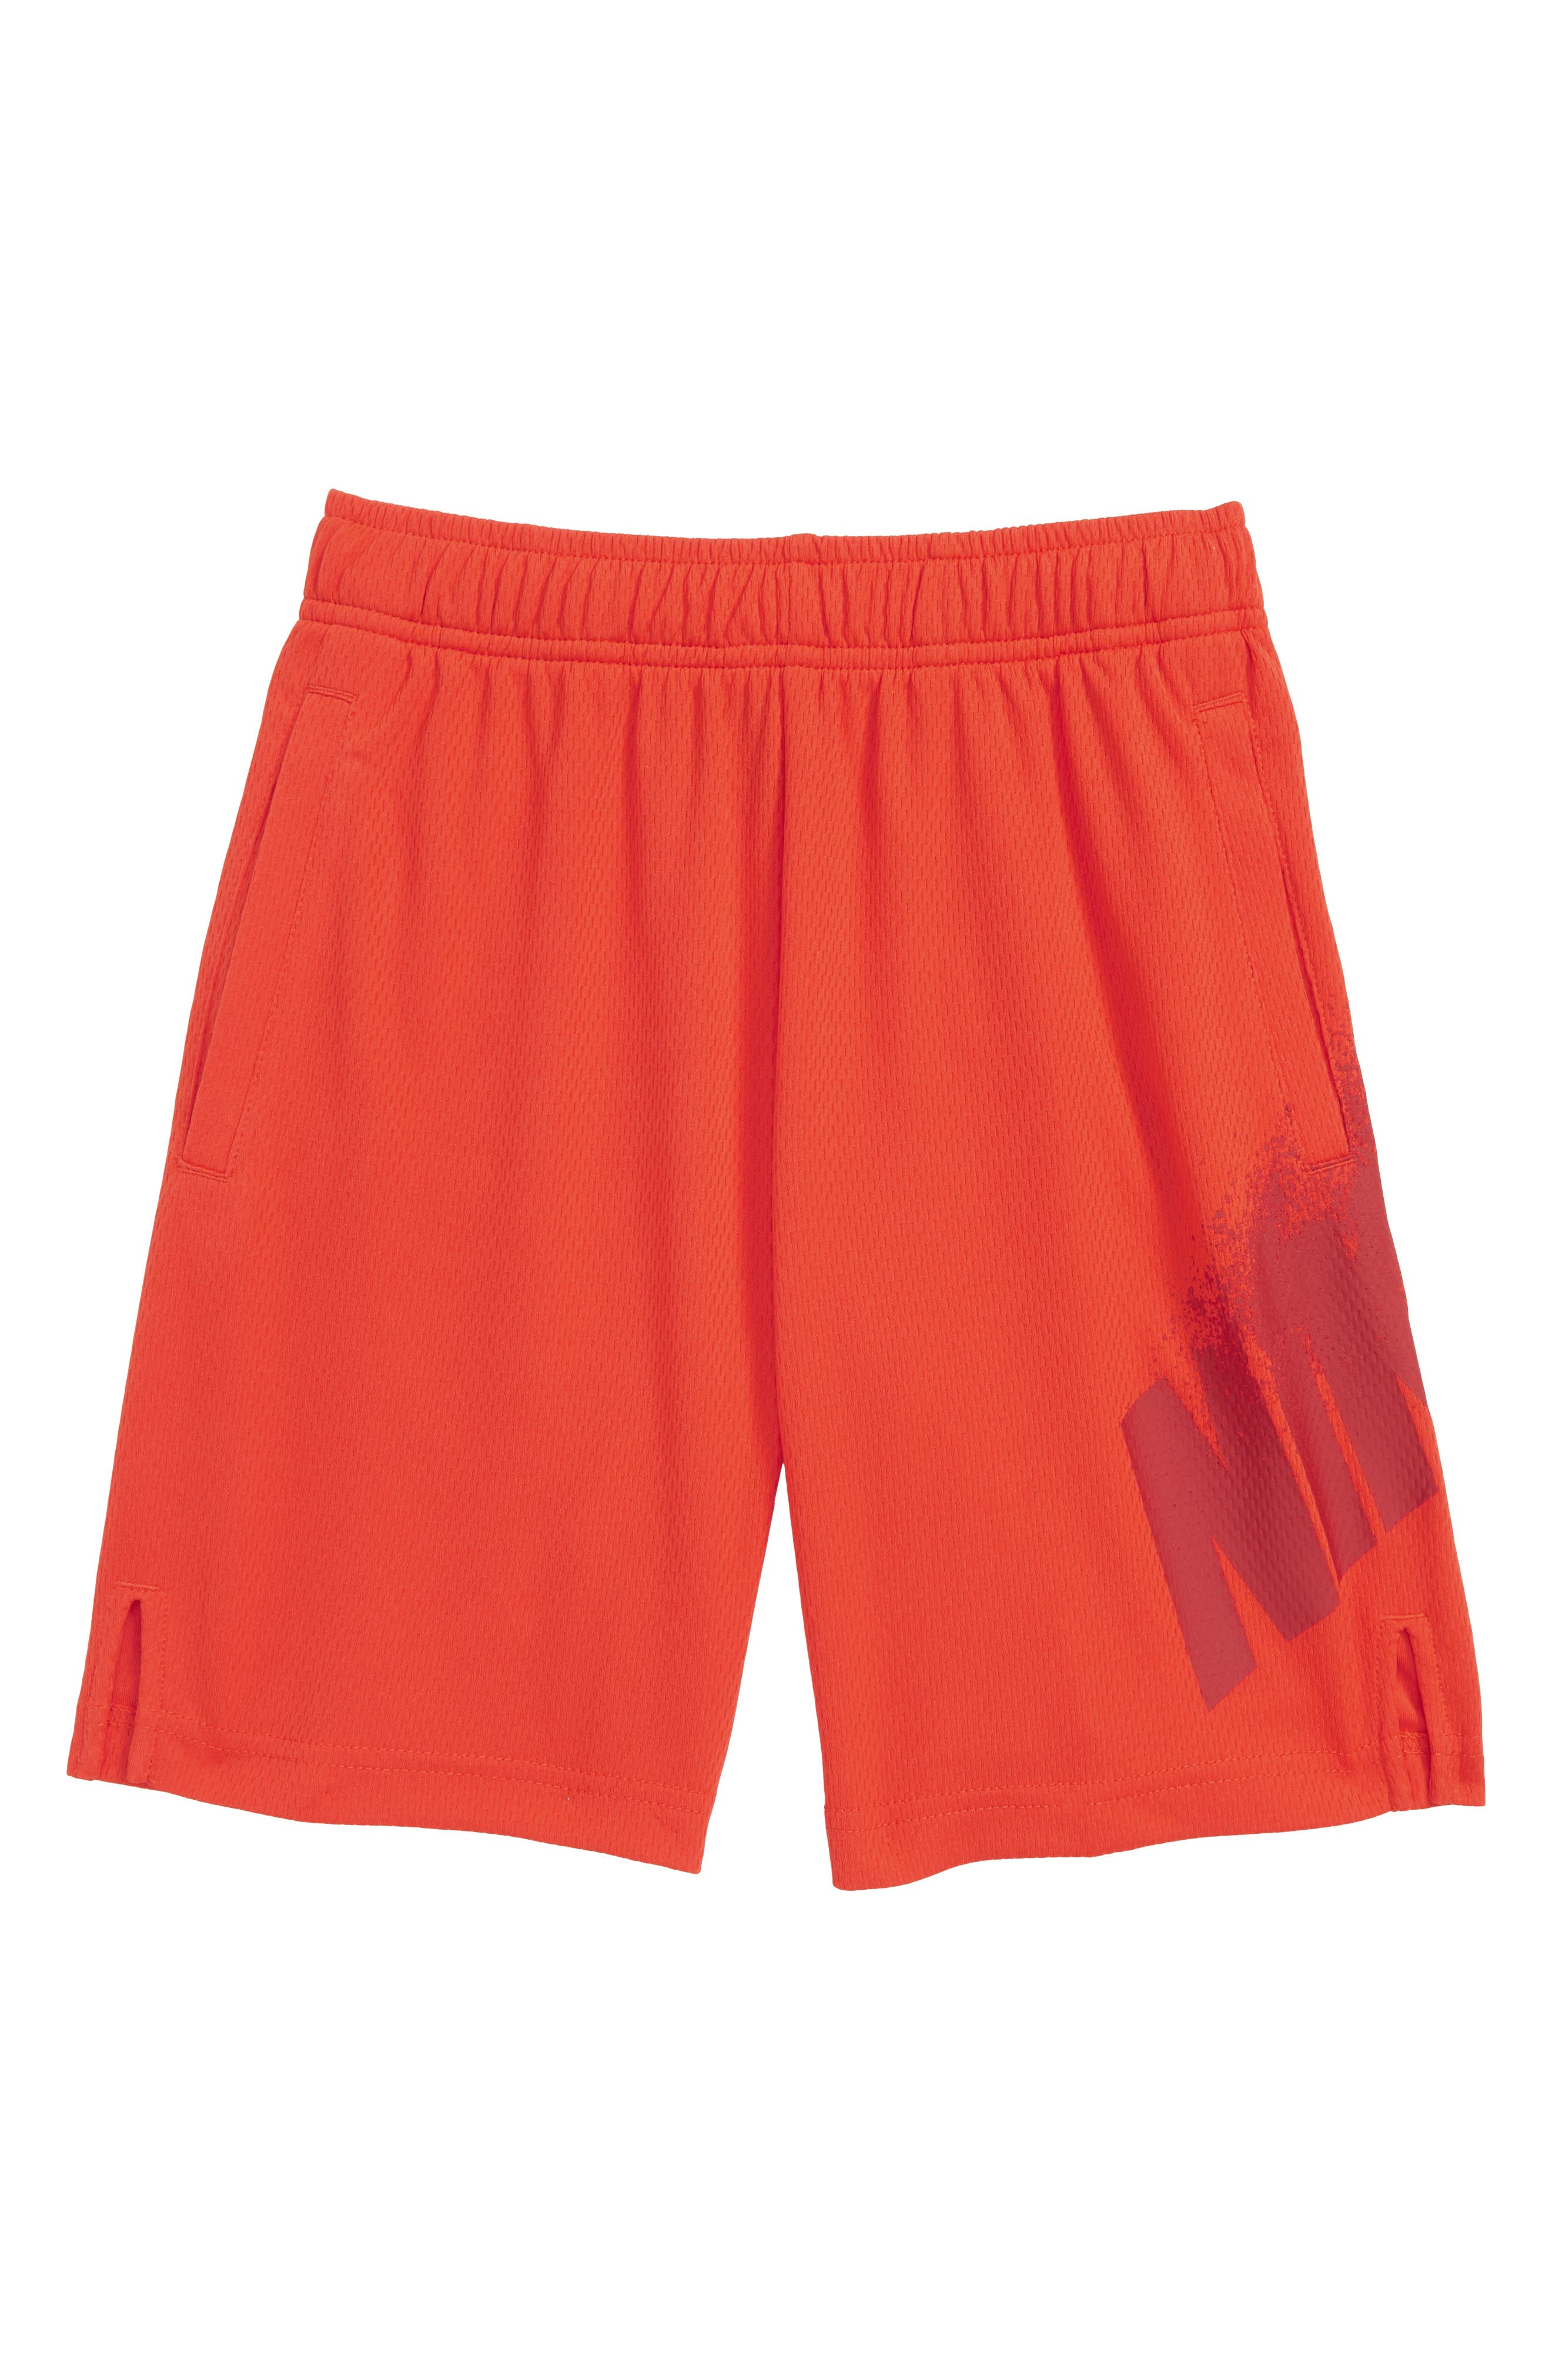 Dry GFX Athletic Shorts,                             Main thumbnail 1, color,                             HABANERO RED/ GYM RED